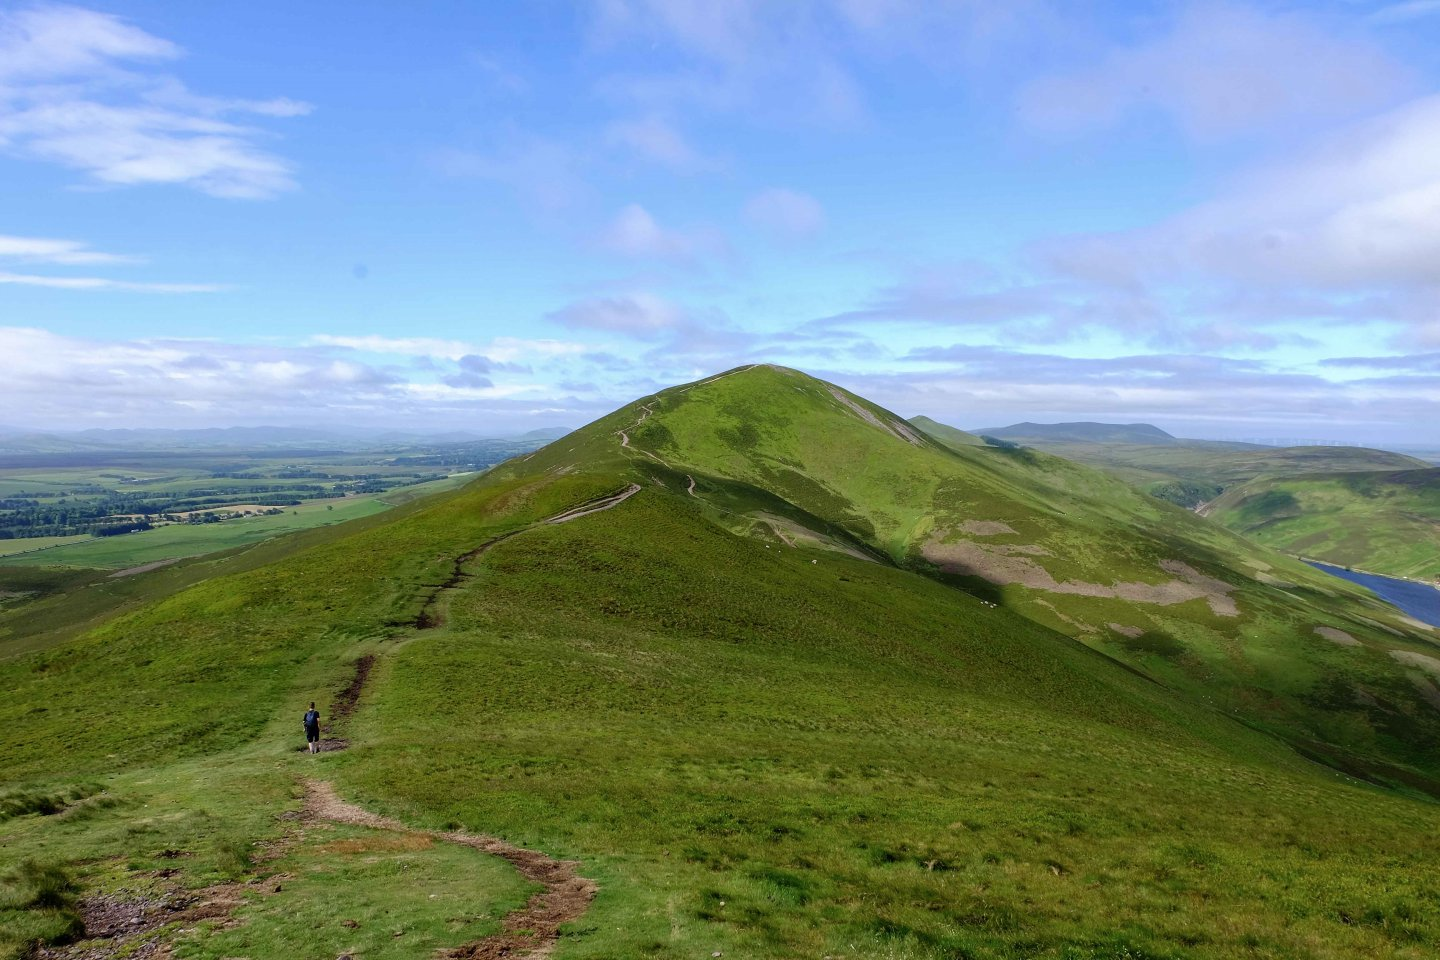 Bagging Five Peaks in the Pentland Hills